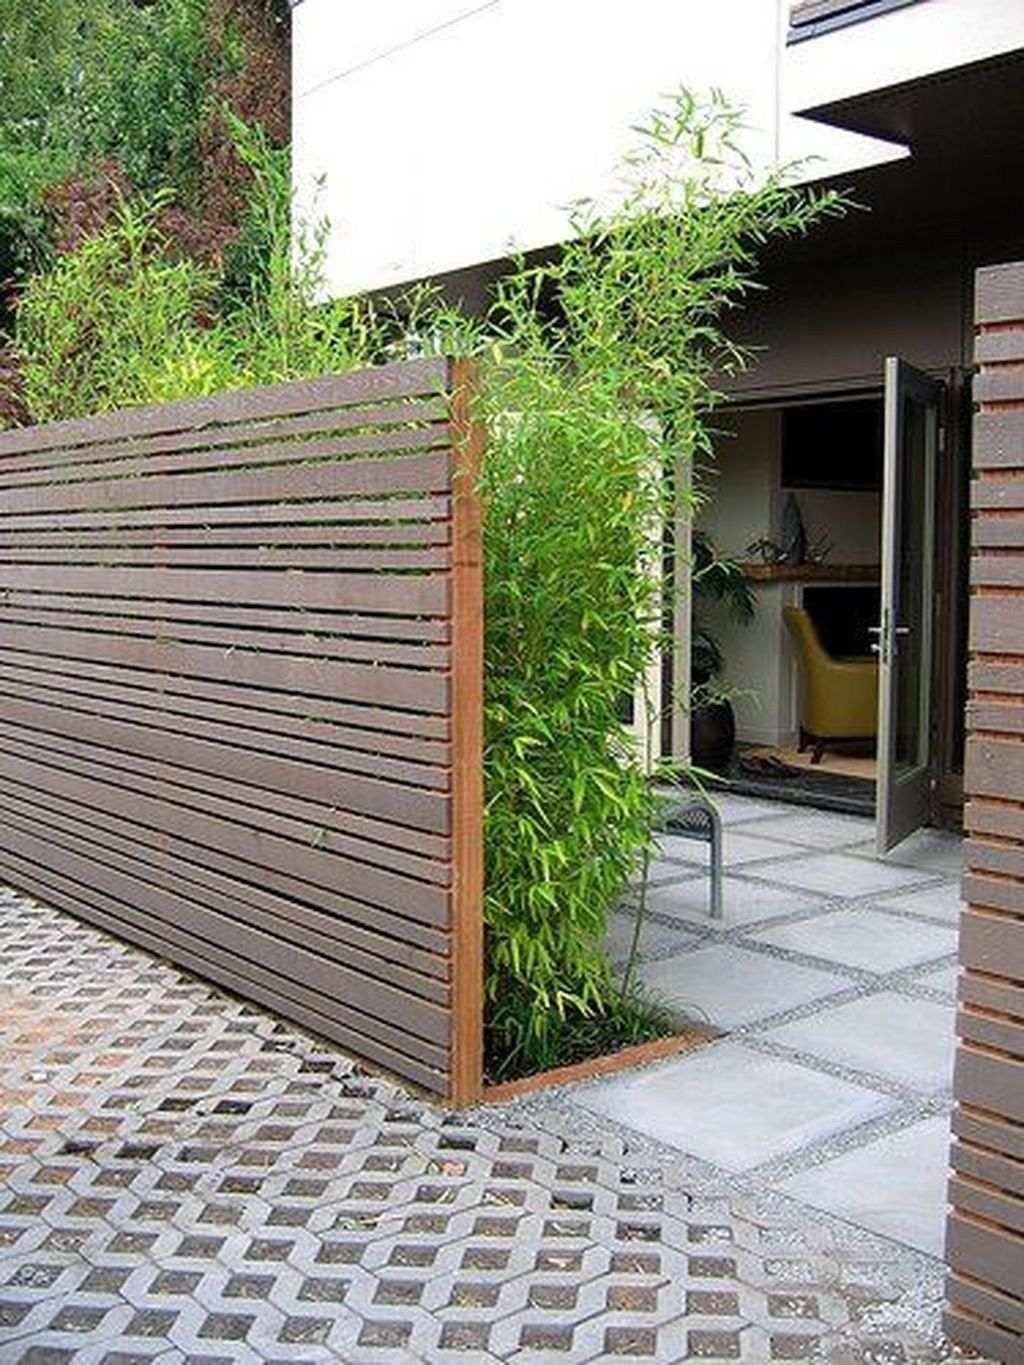 Gorgeous Modern Fence Design Ideas Match For Any House 38 Privacy Fence Designs Modern Fence Design Backyard Fences